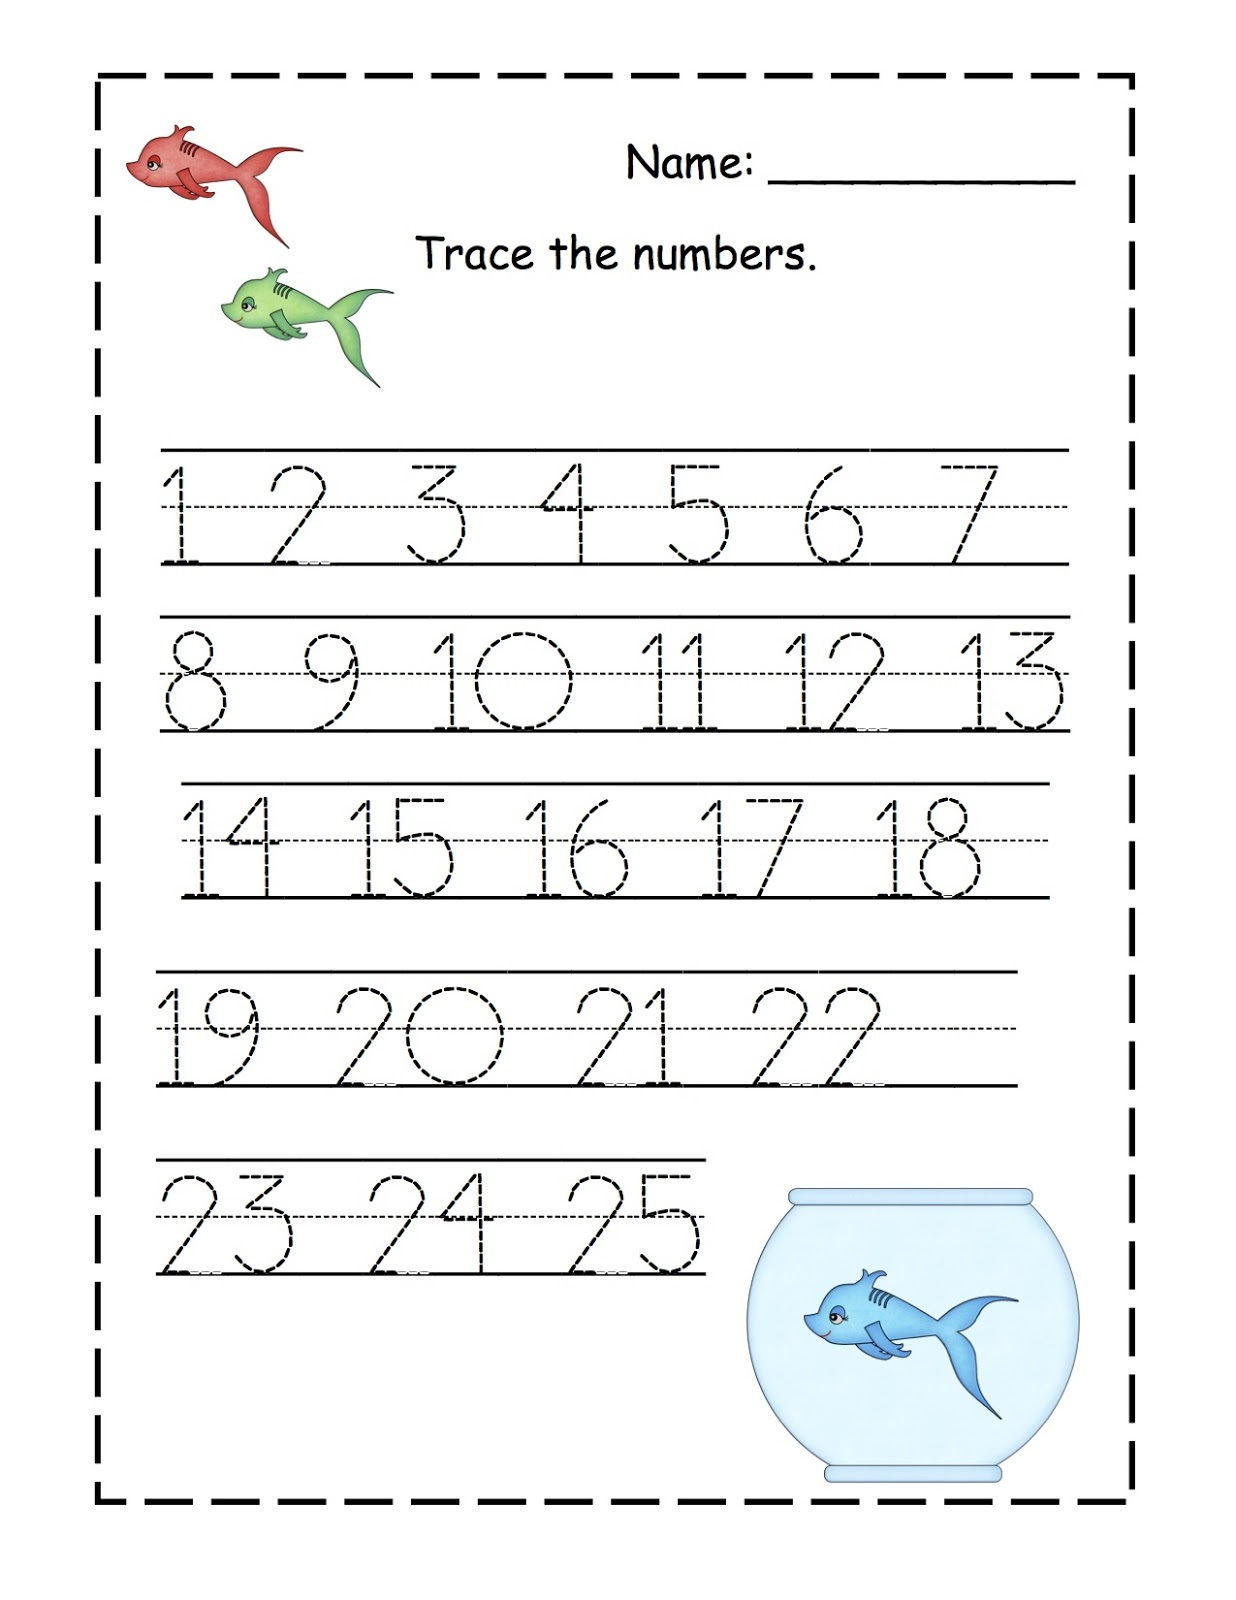 Order Numbers Activity